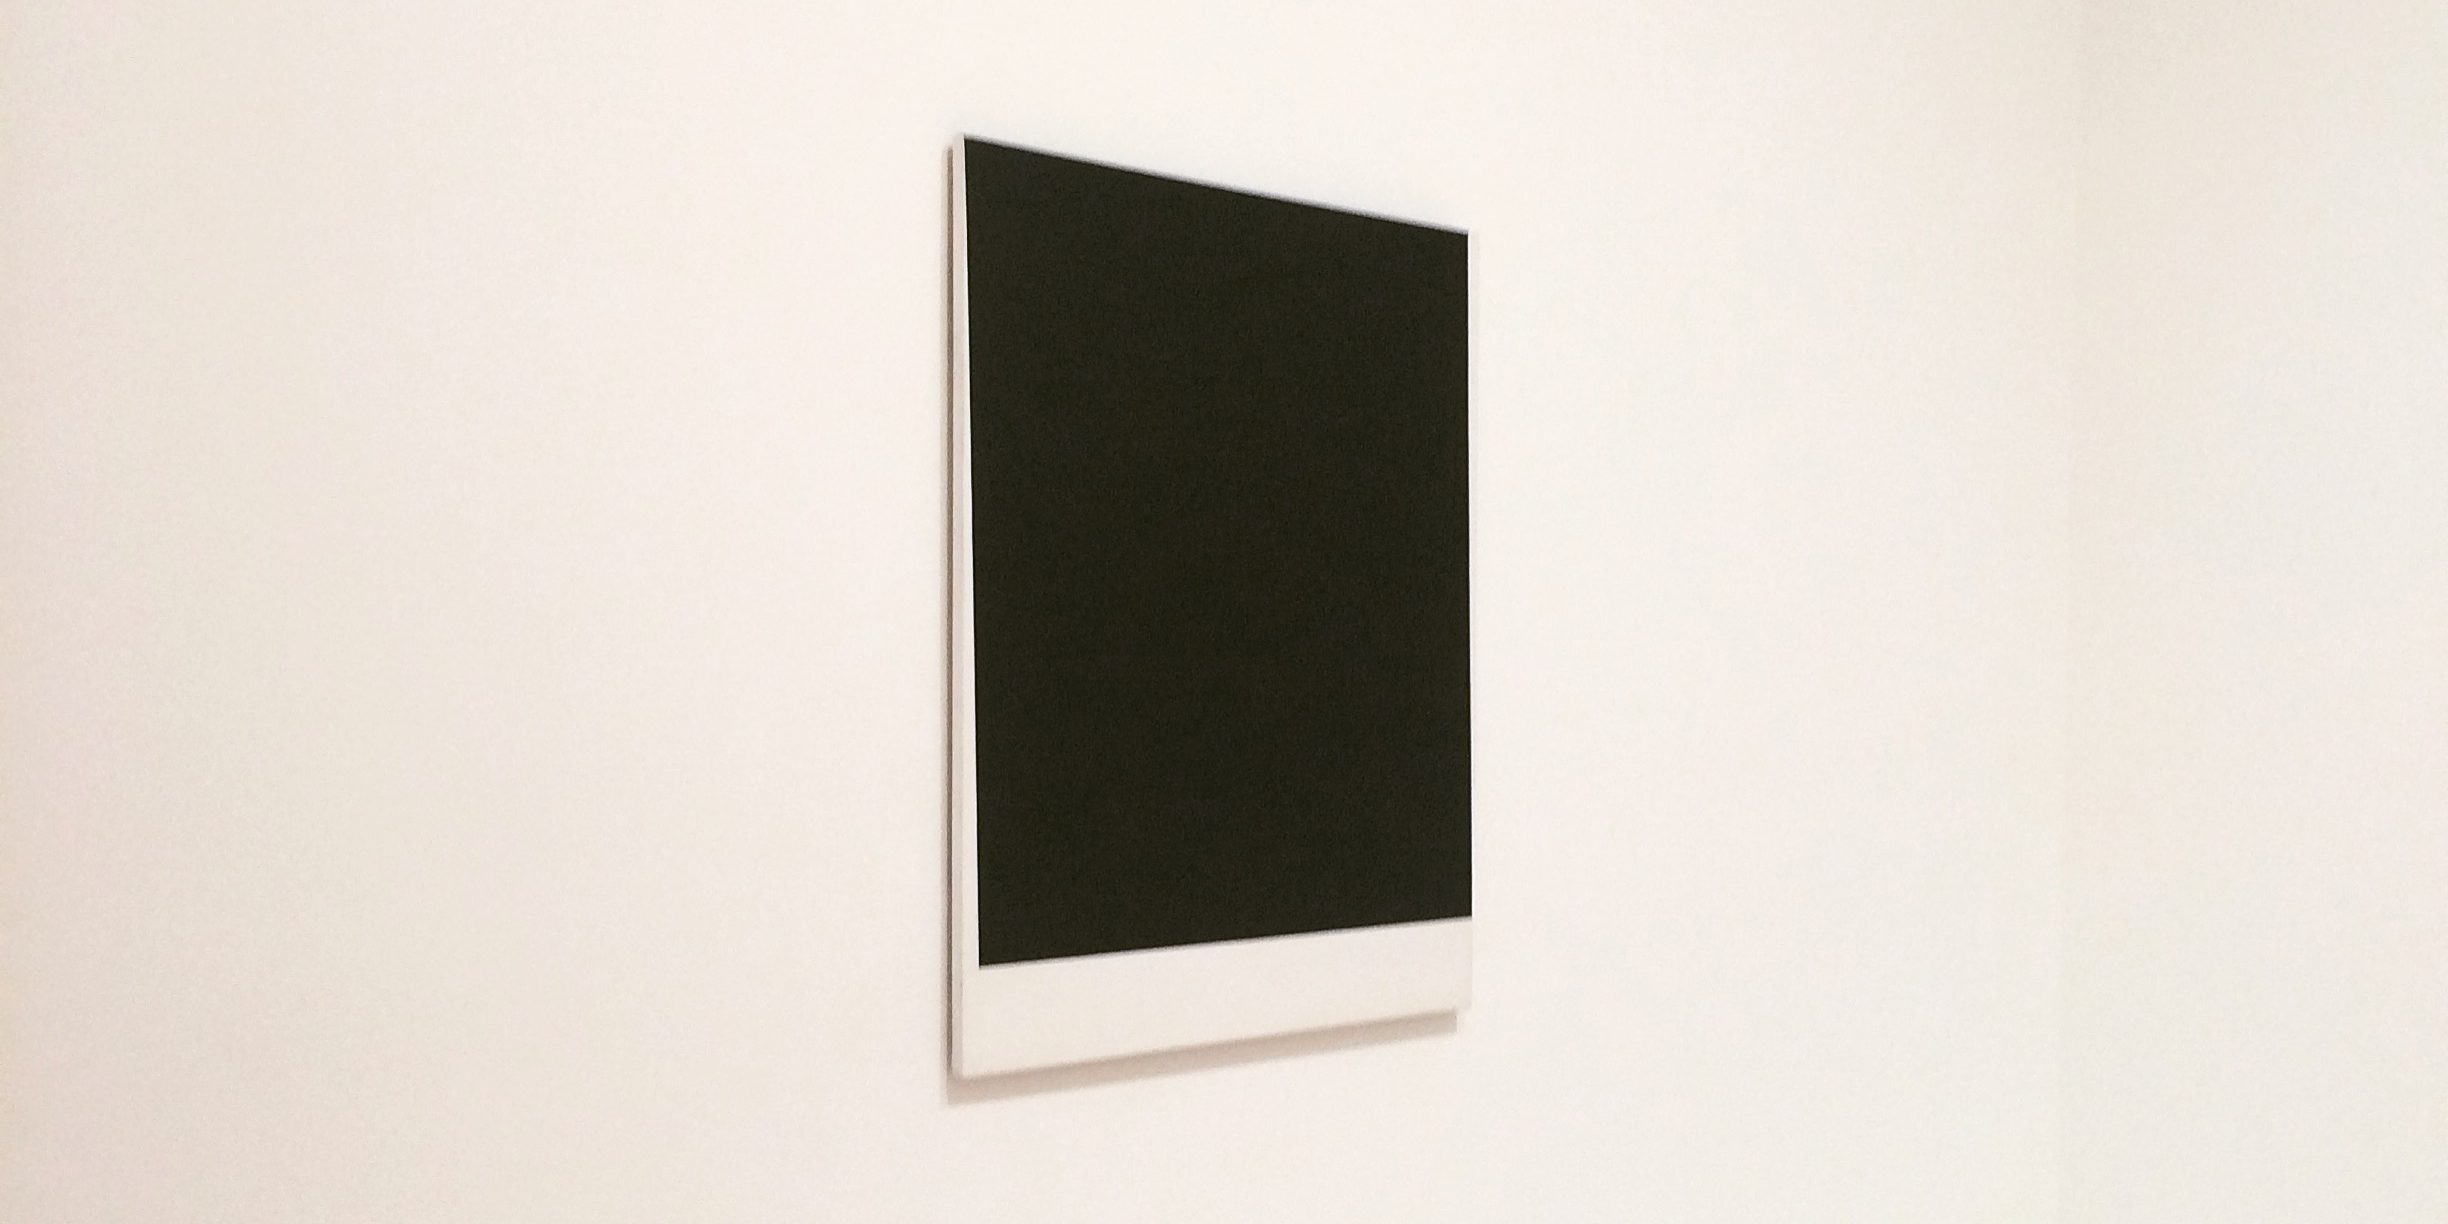 Blank black and white canvas on wall